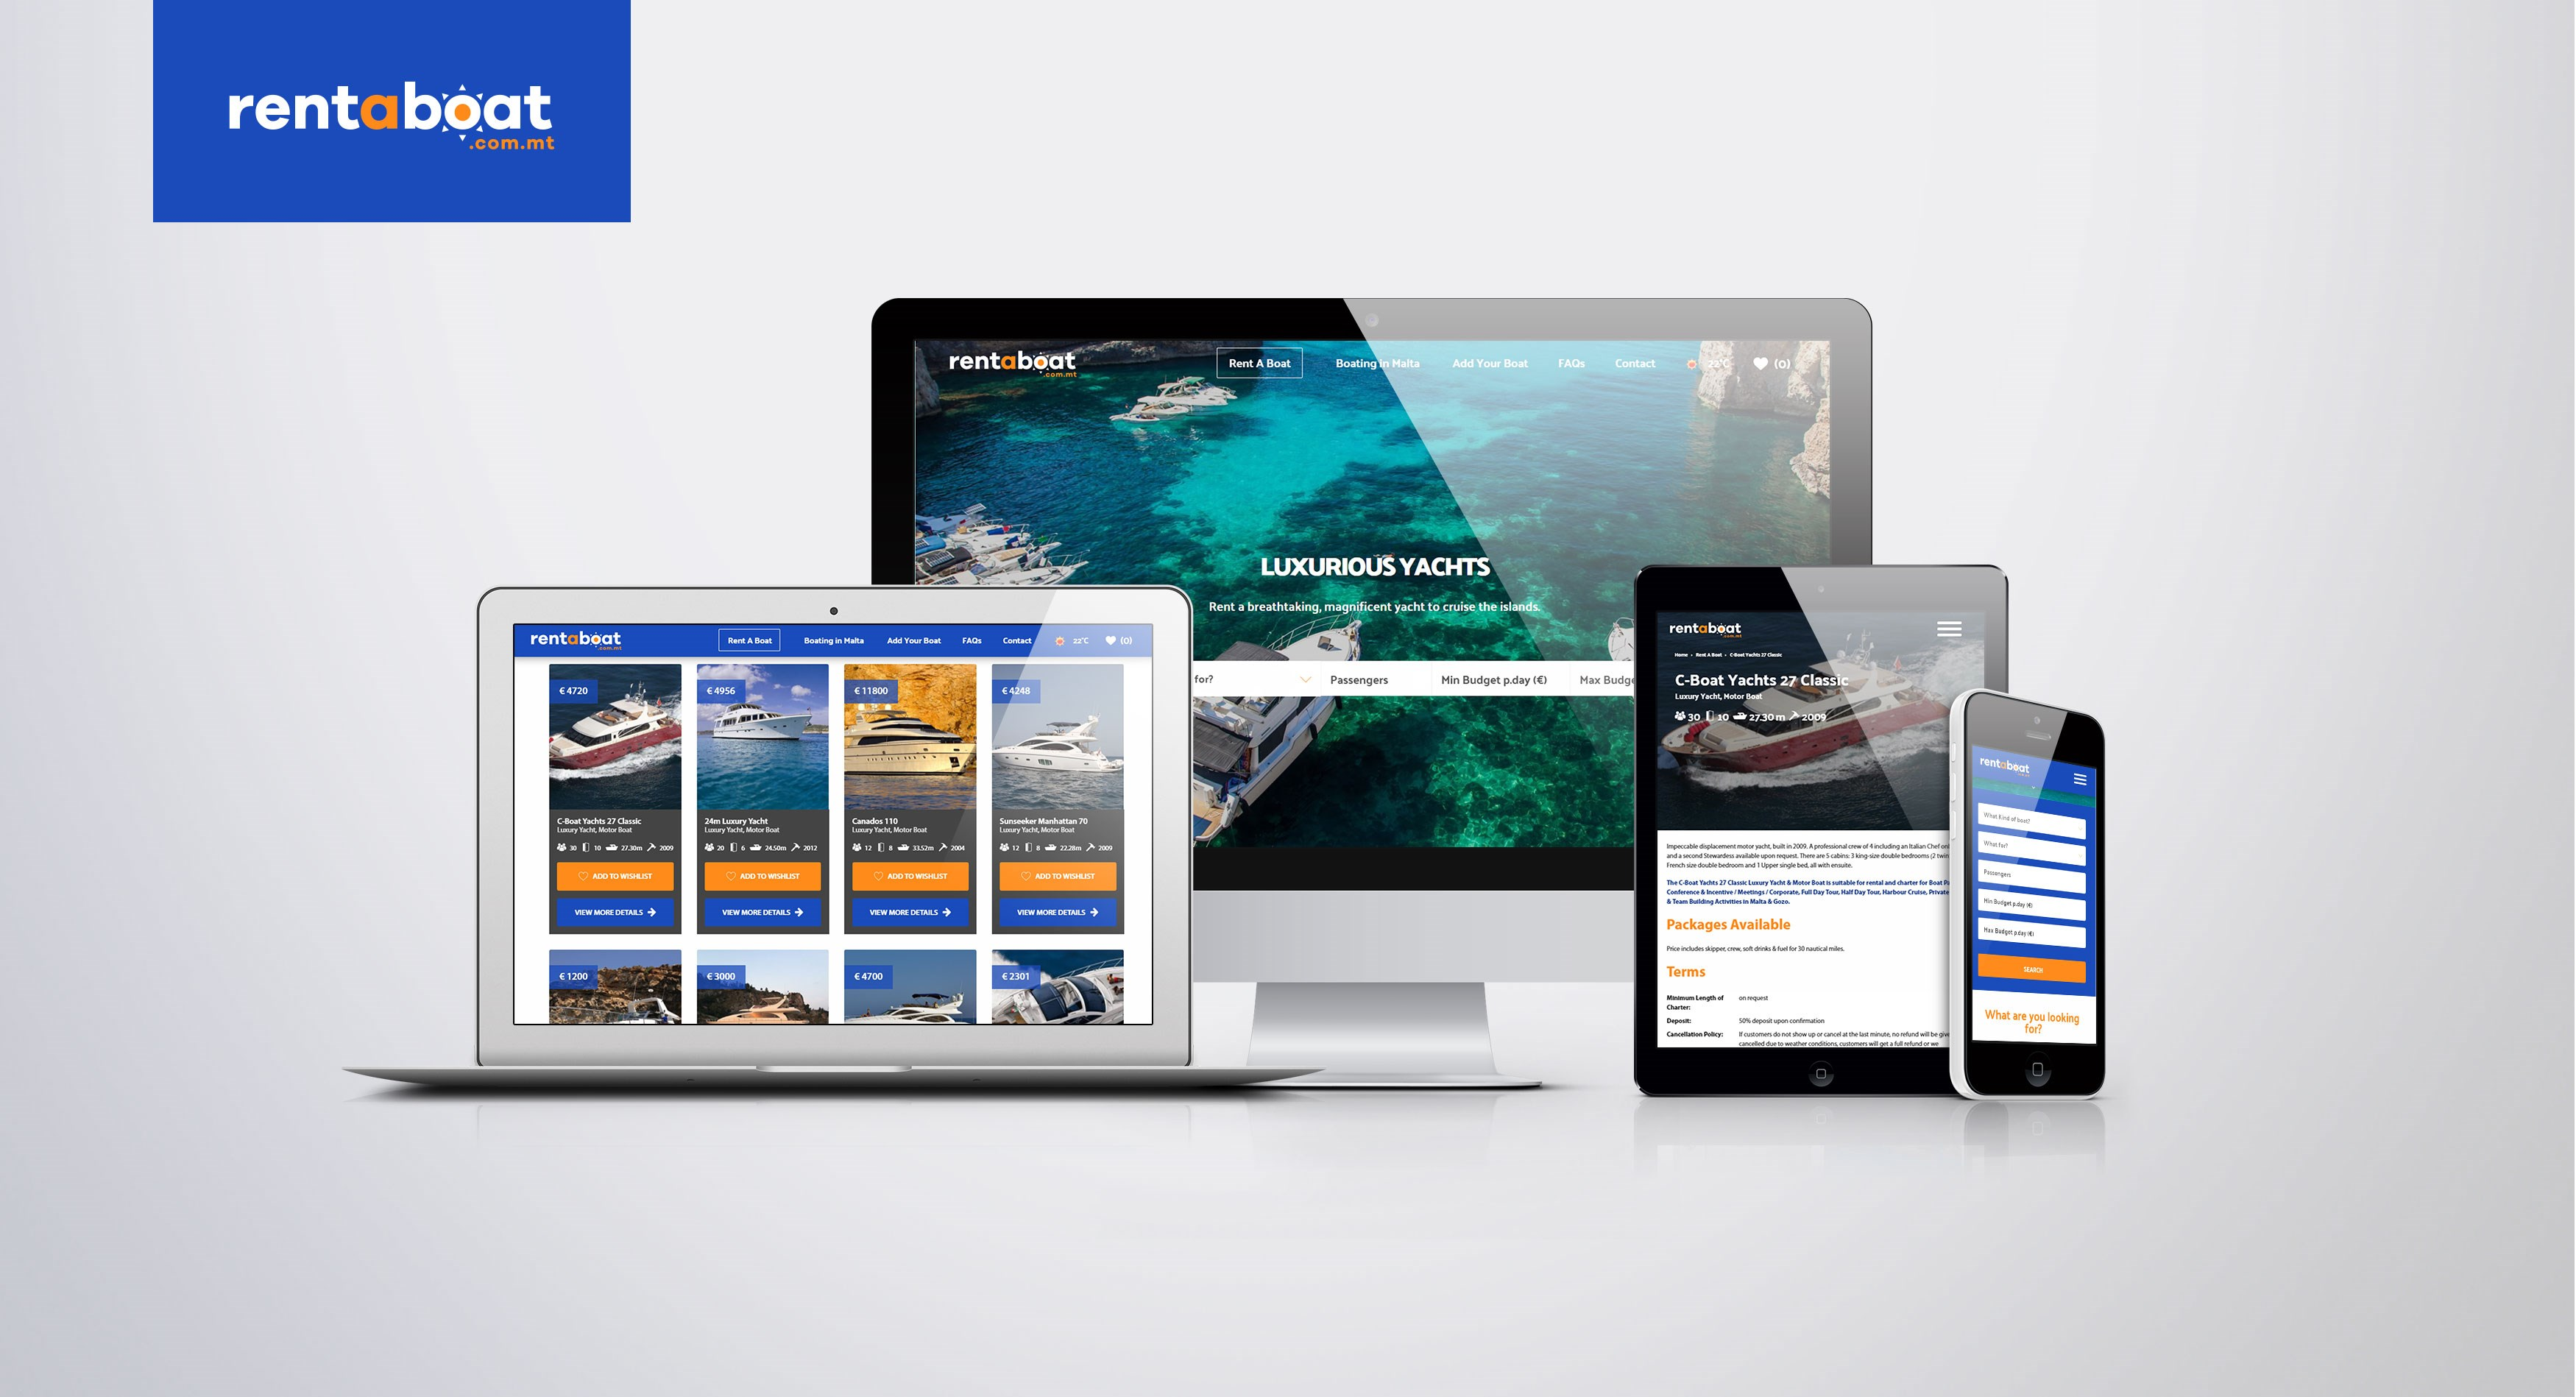 Rent A Boat.com.mt - Web Design & Development / Custom Software Development / E-Commerce & eBusiness / Custom Web Application Development / Support & Maintenance / Web Hosting & Domain Names / Creative, Digital, Social Media & Strategy